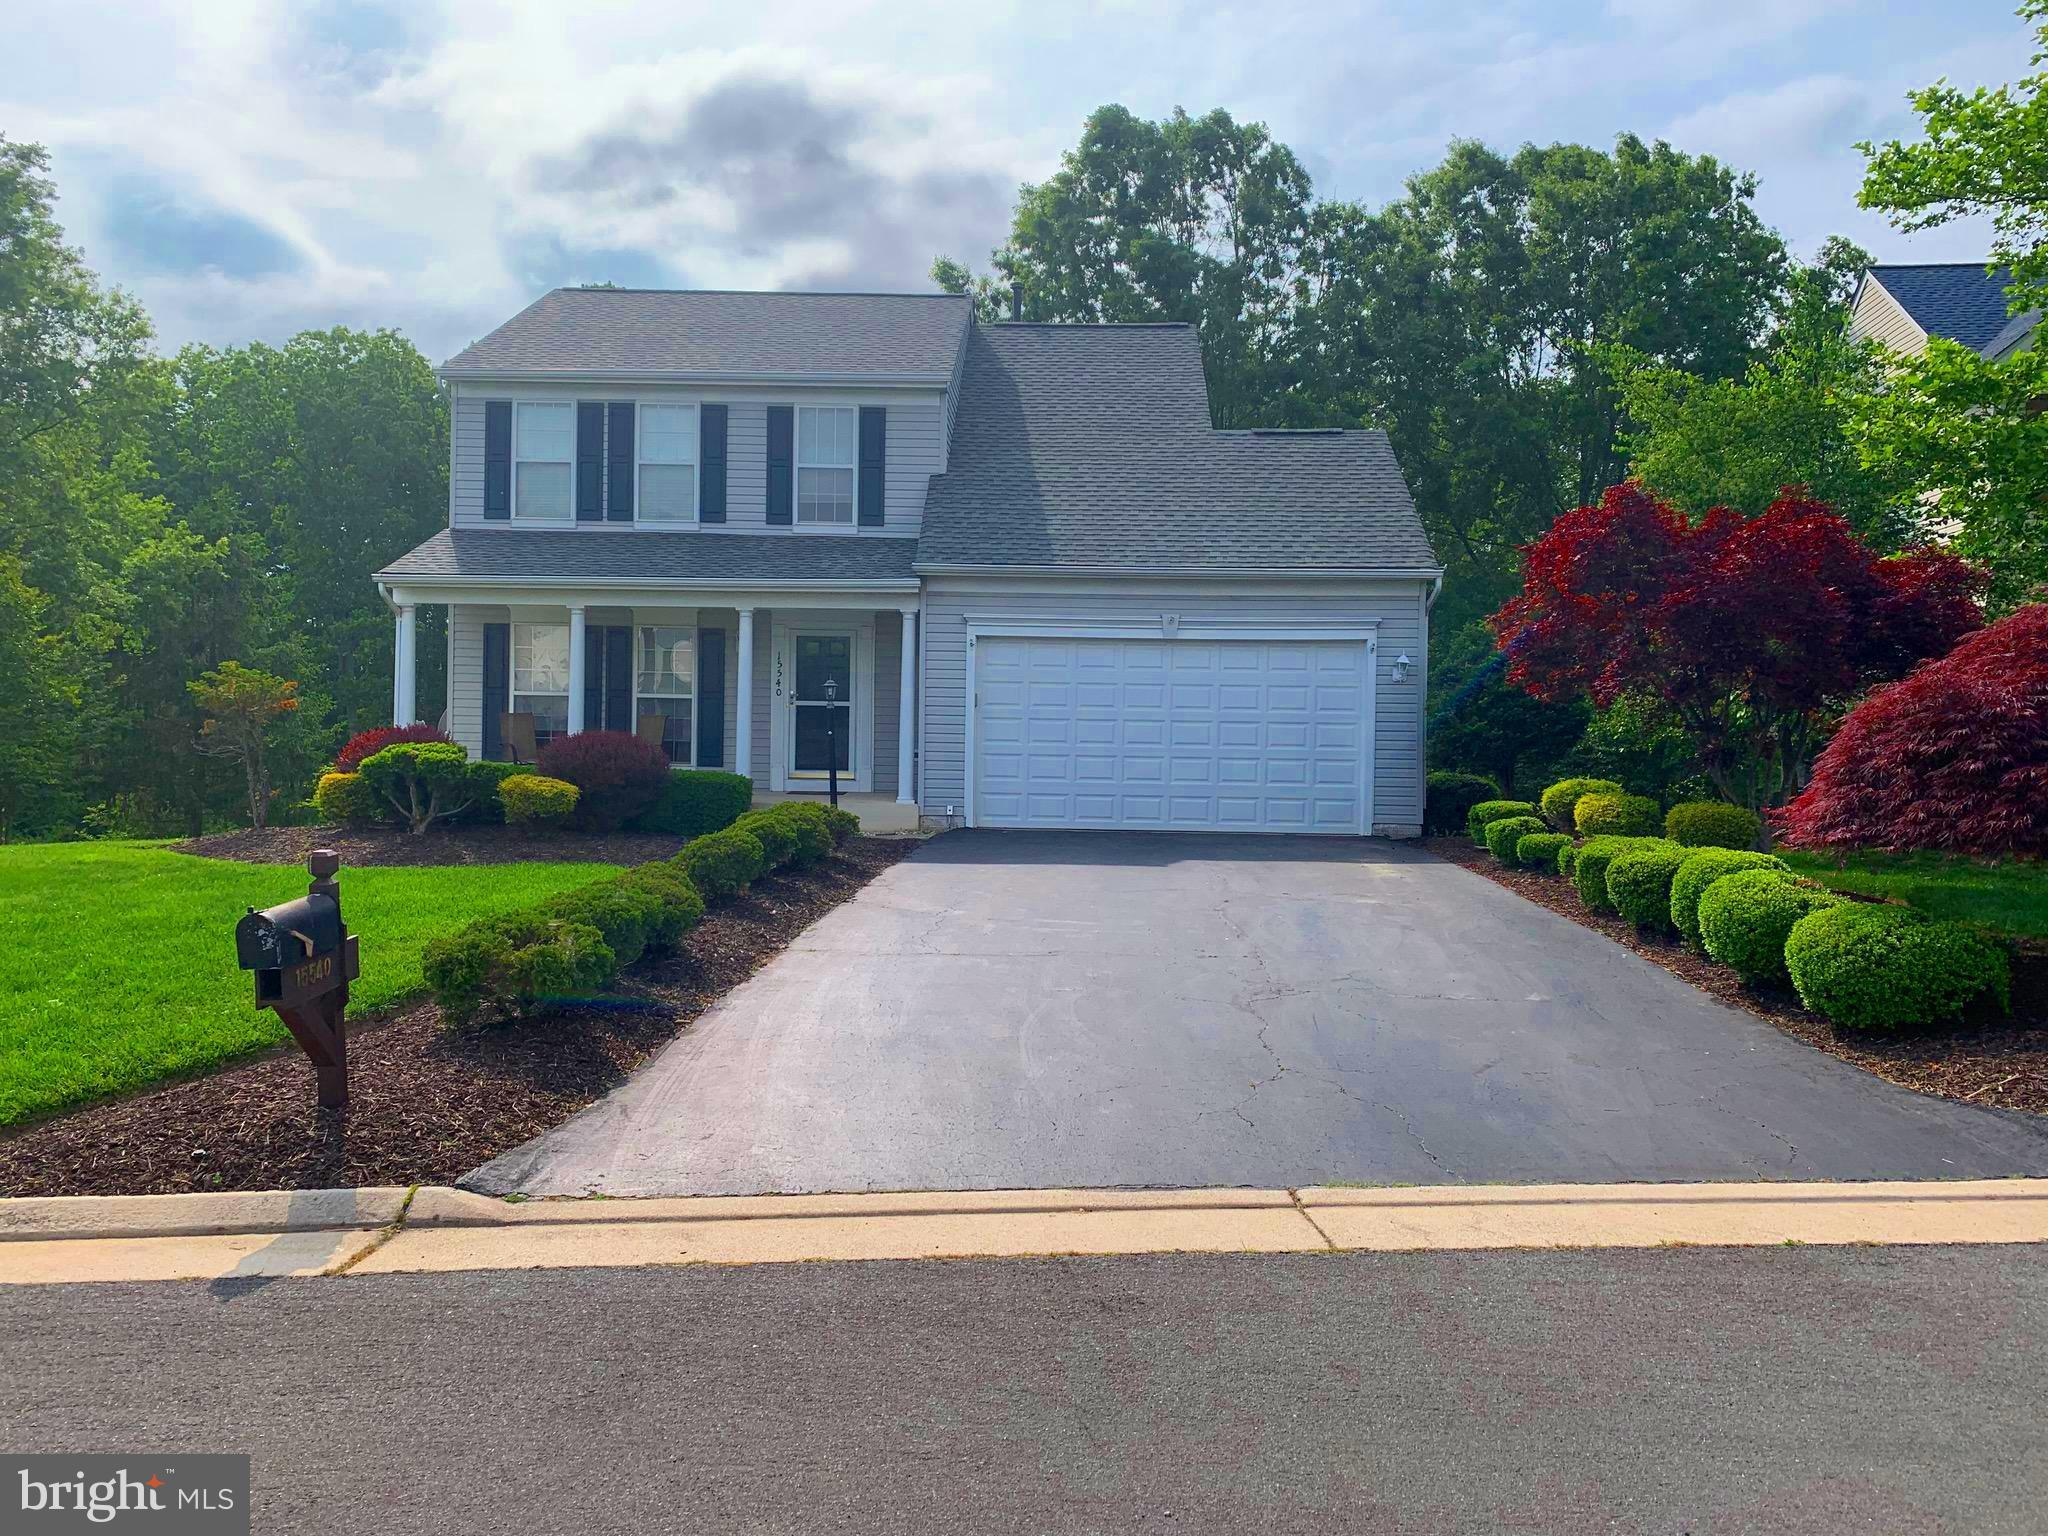 Beautiful family home in highly desired Dawson Landing neighborhood, just minutes from the water and VRE commuter train and lots of walking trails, including Neabsco Park & Boardwalk.  Just a short drive from  Quantico Marine Base and Fort Belvoir. Open layout with kitchen that has granite counter tops  & hardwood floors on main level. Large Walk-in Closet in Master Bedroom. Screened & spacious deck with patio offers perfect space for outdoor entertaining. The fully finished walk out basement leads into a huge yard & beautiful landscaping.  Roof was replaced in 2018, updated Lawn Irrigation System and  Ceiling Fans.  Home also features a water filtration system. The fully customizable garage wall organization system with rolling work bench is any Handyman's dream!  Nearby shopping & restaurants via Potomac Town Center & Potomac Mills Mall. Please schedule showing with at least 2 hours notice - 9 am - 8 pm - 7 days a week -Lockbox Combo.